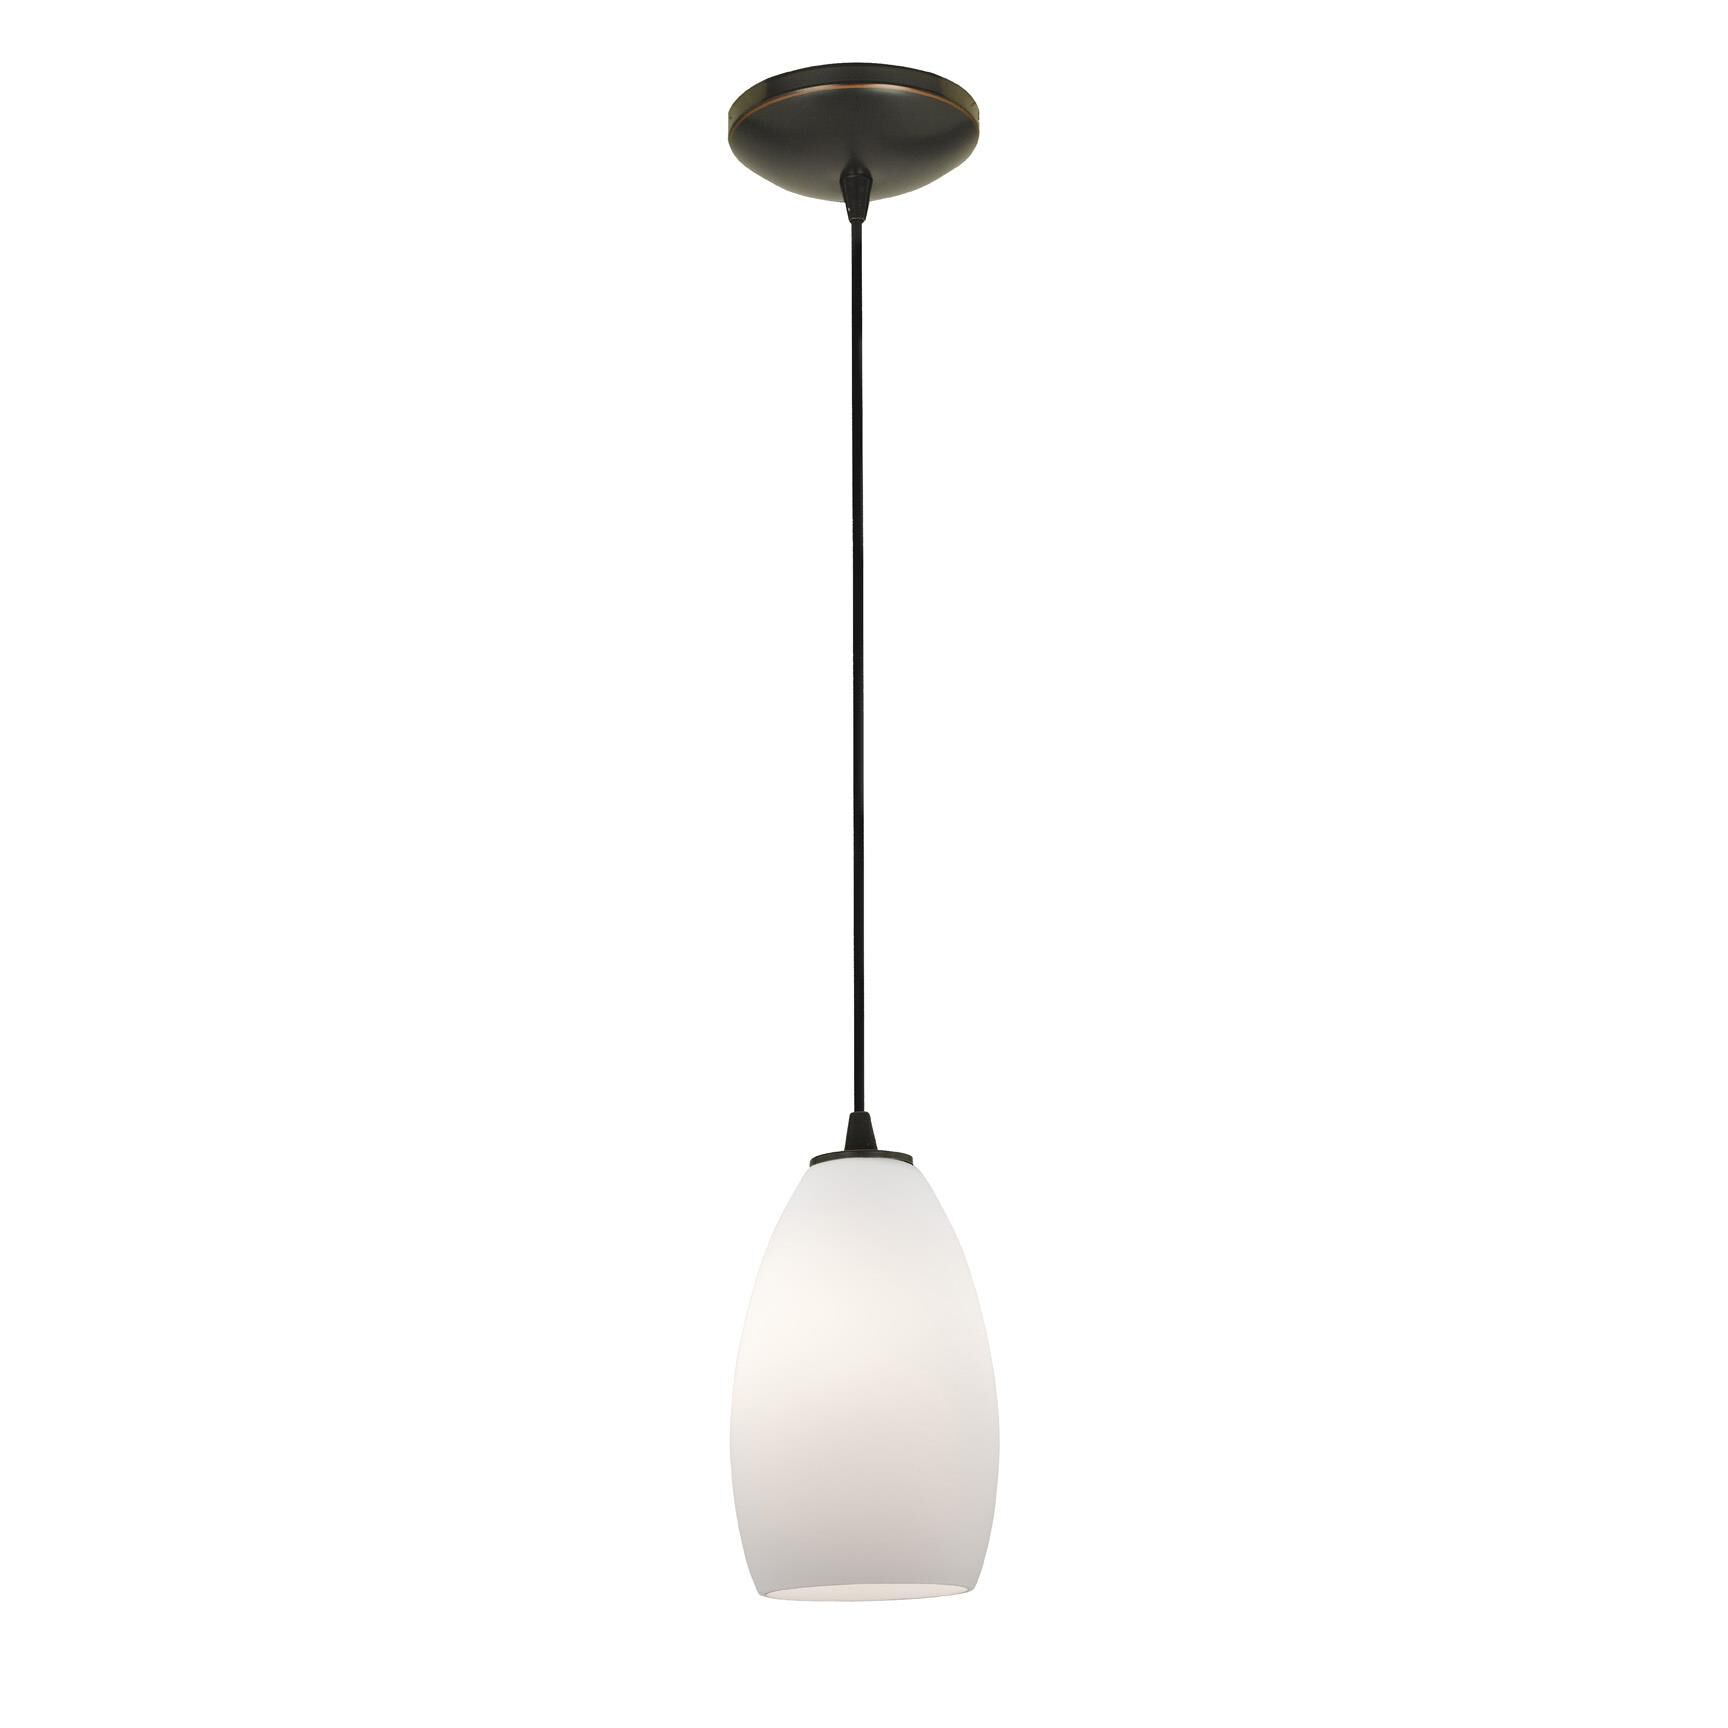 Access Lighting Champagne 9 Inch Mini Pendant Champagne 28012 1C ORBOPL Modern Contemporary